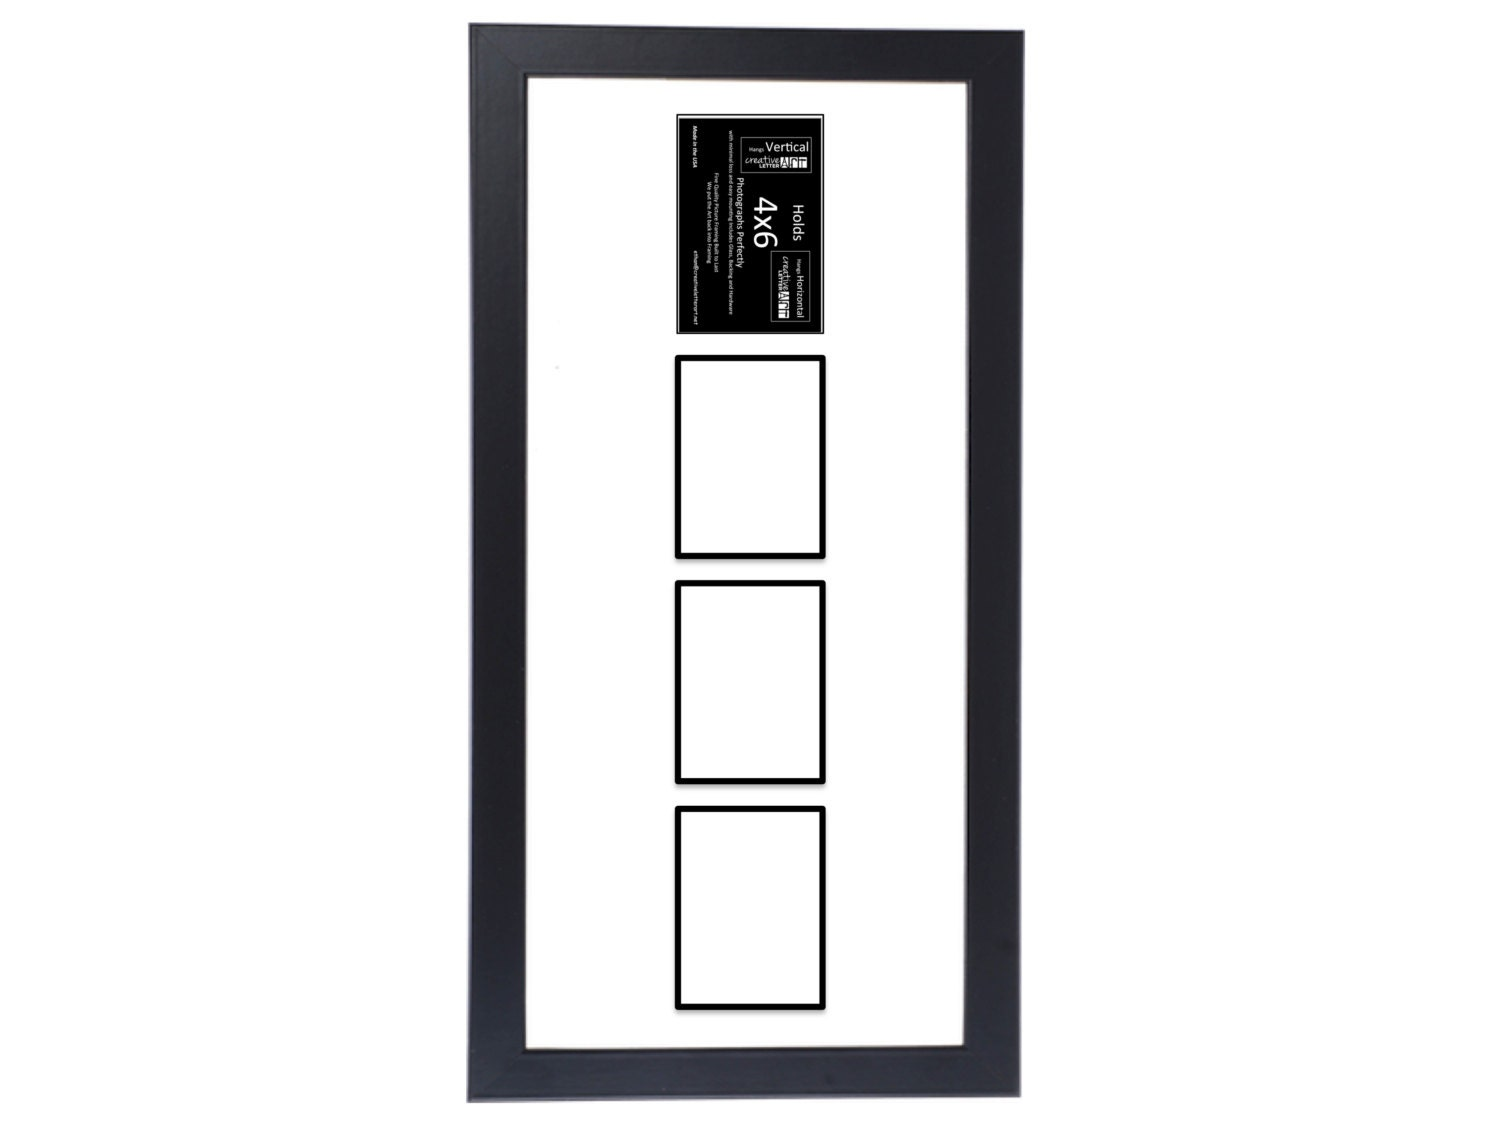 4x6 Vertical Multiple 2 3 4 5 6 Opening Black Picture Frame